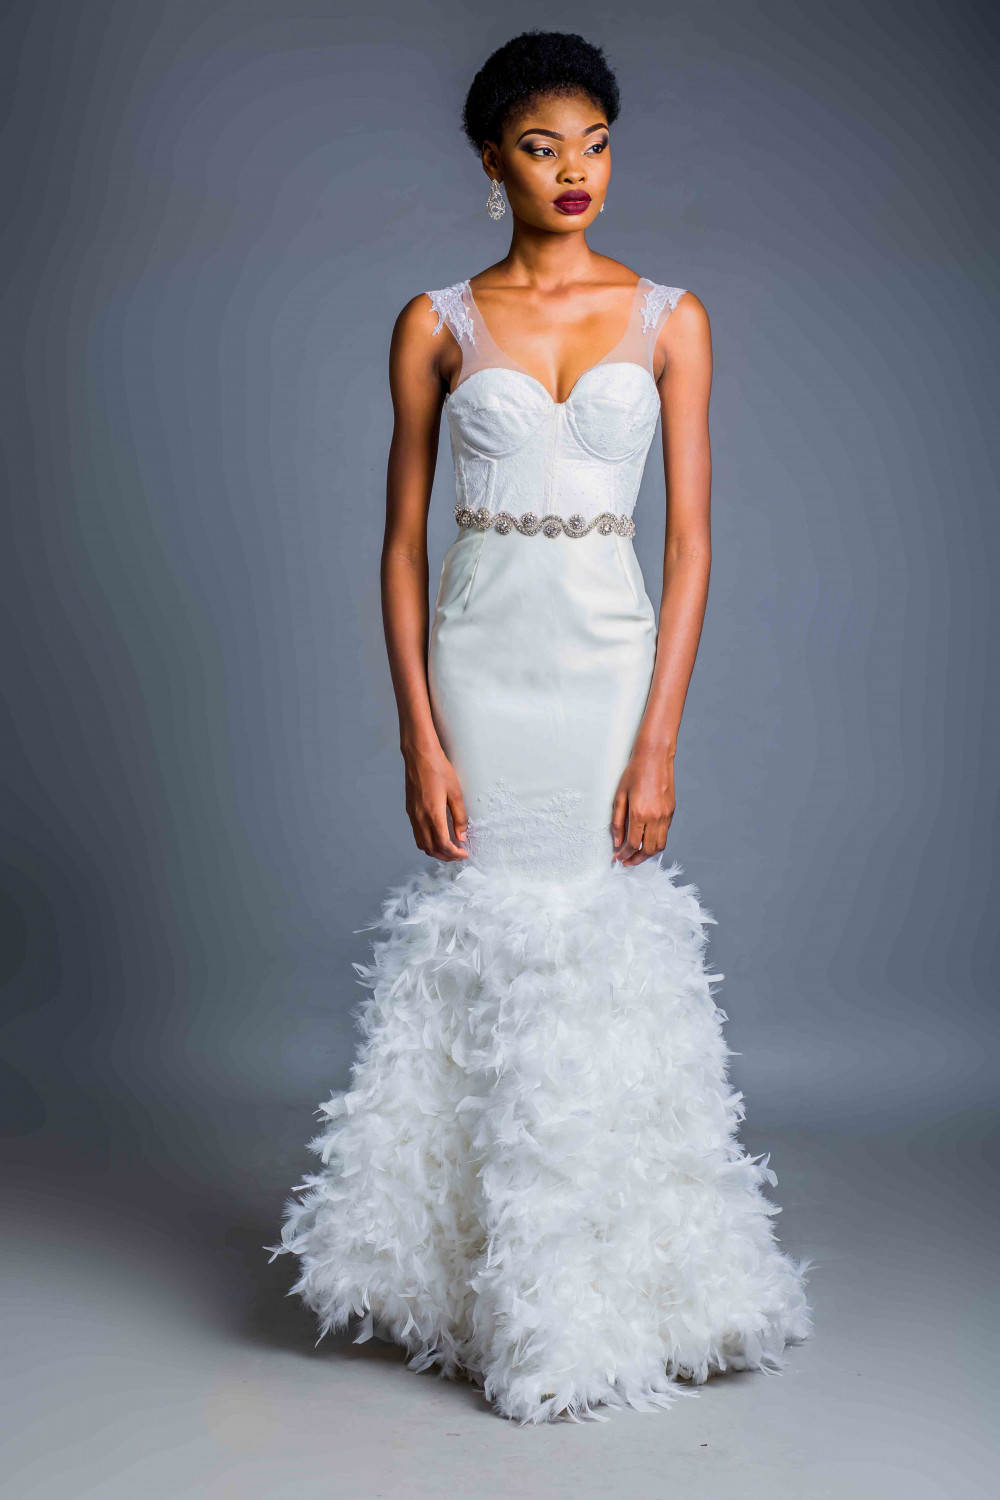 Hollerose Designs 2016 Collection Bridal 5